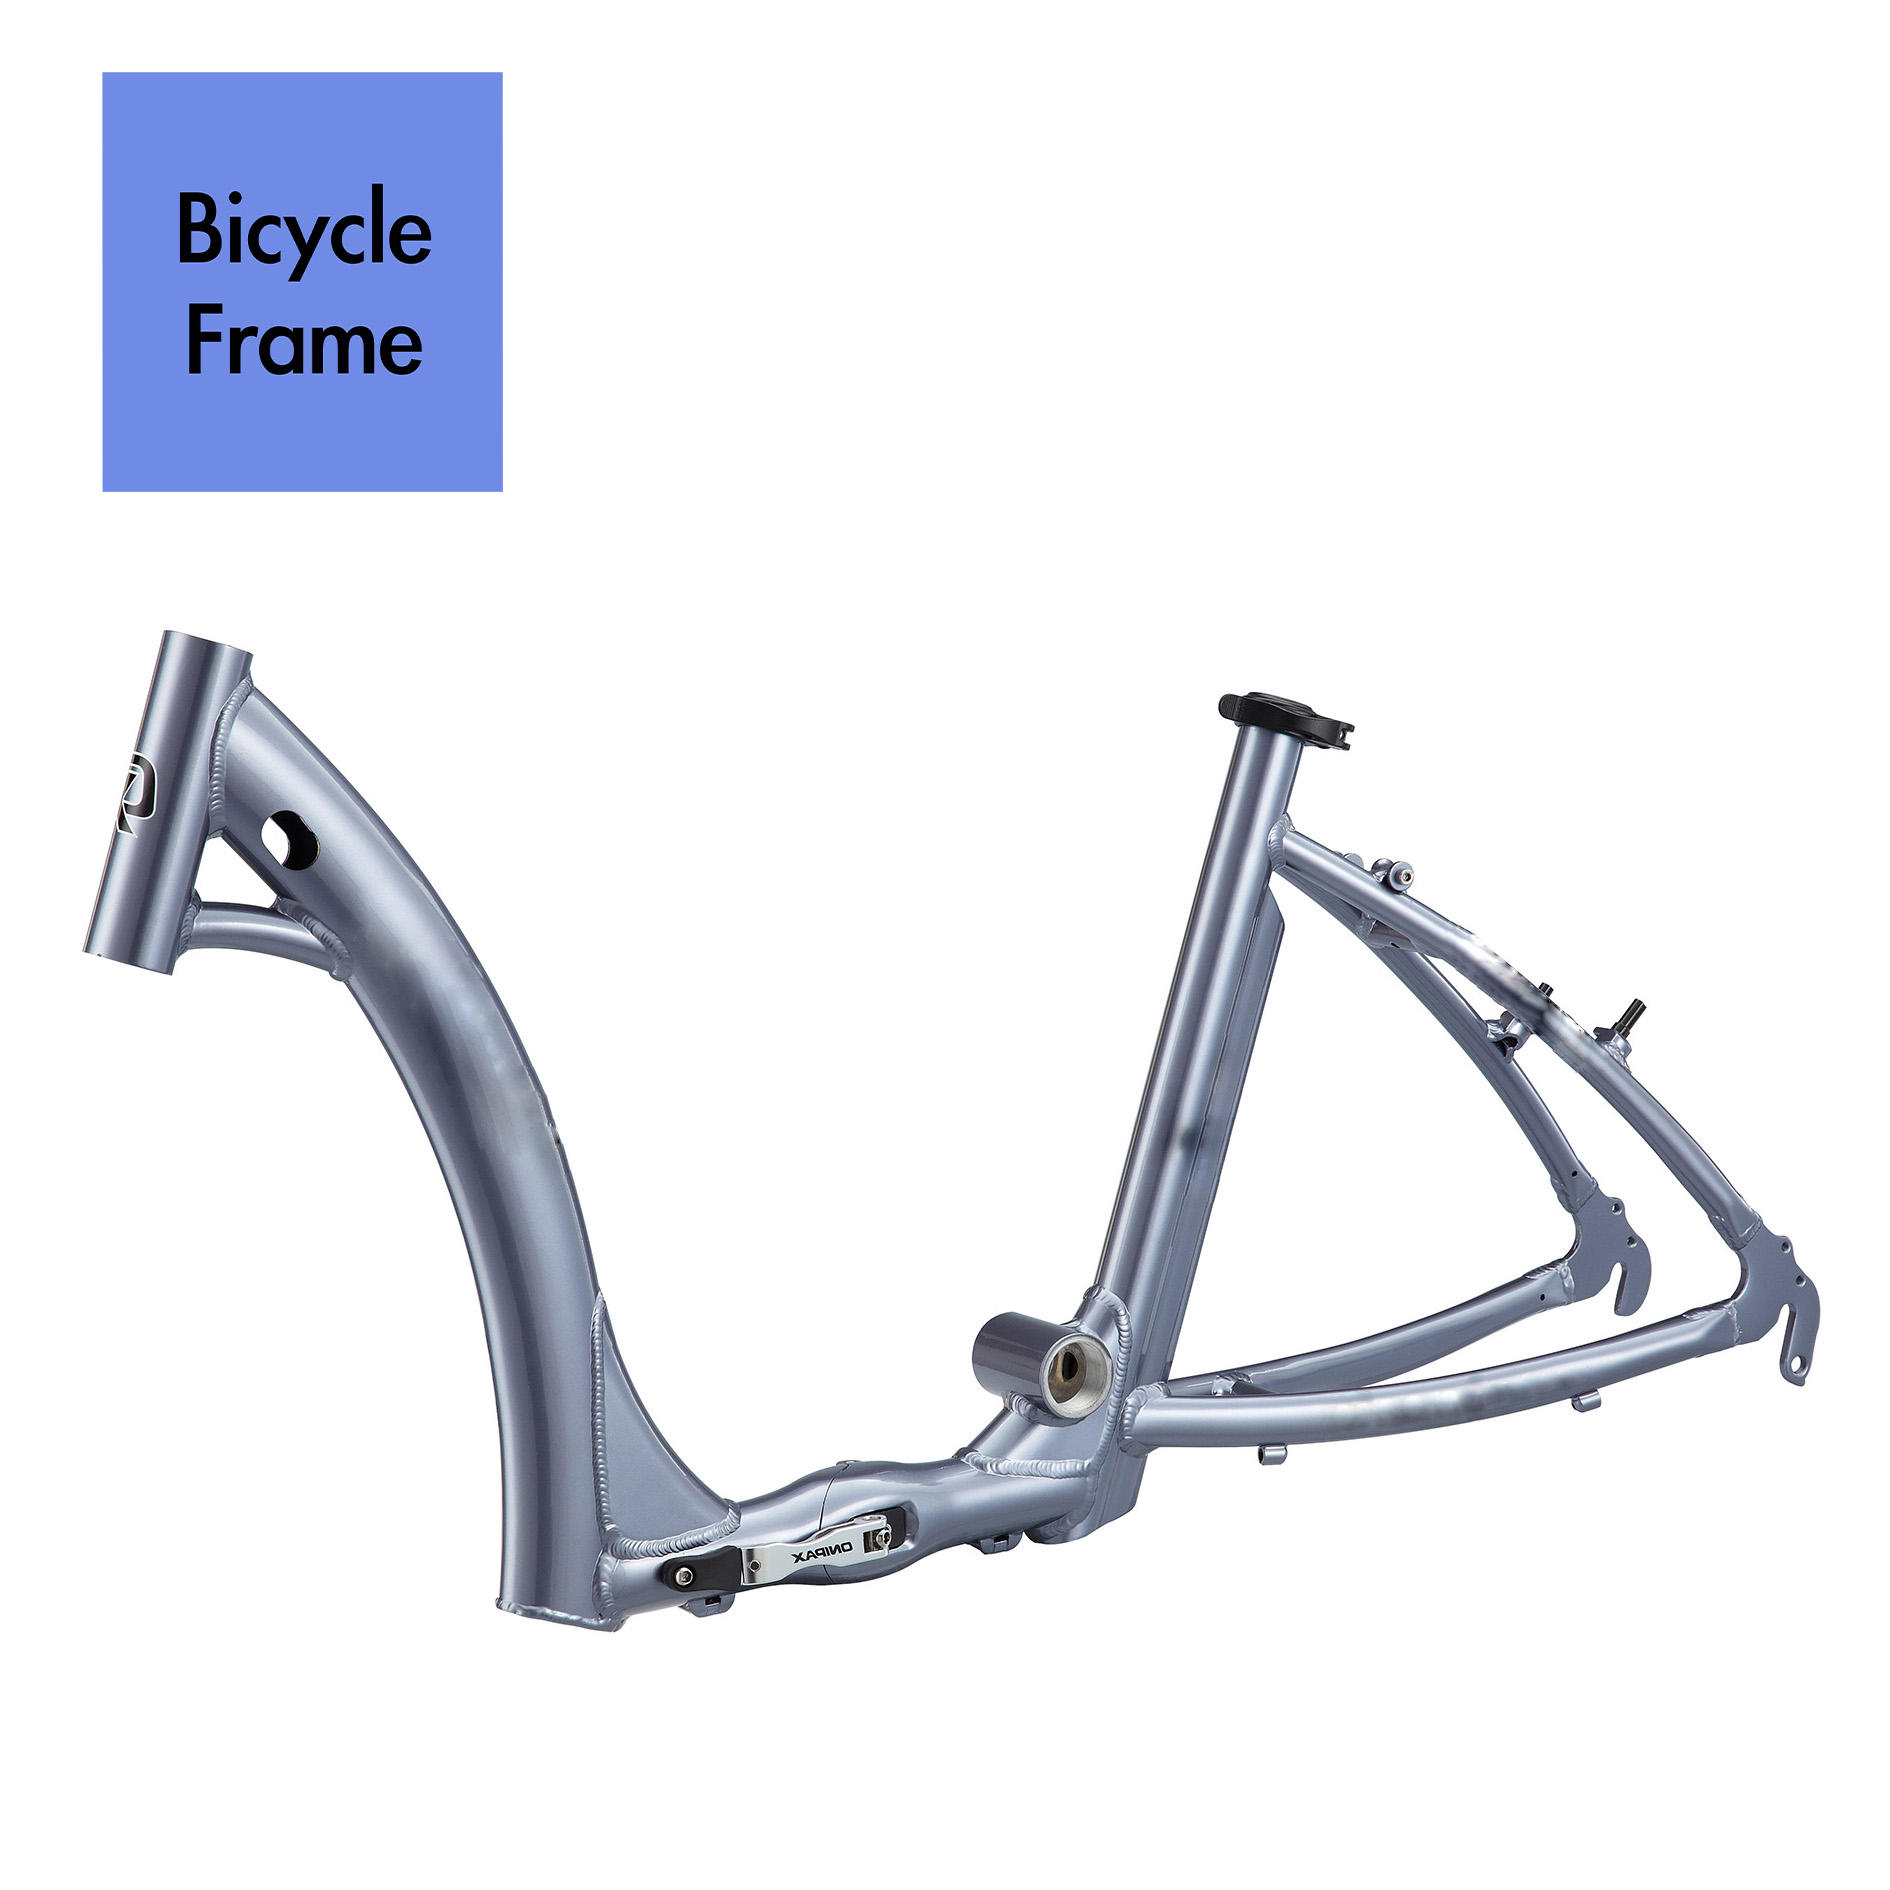 ODM/OEM MTB suspension frame made in Taiwan sale